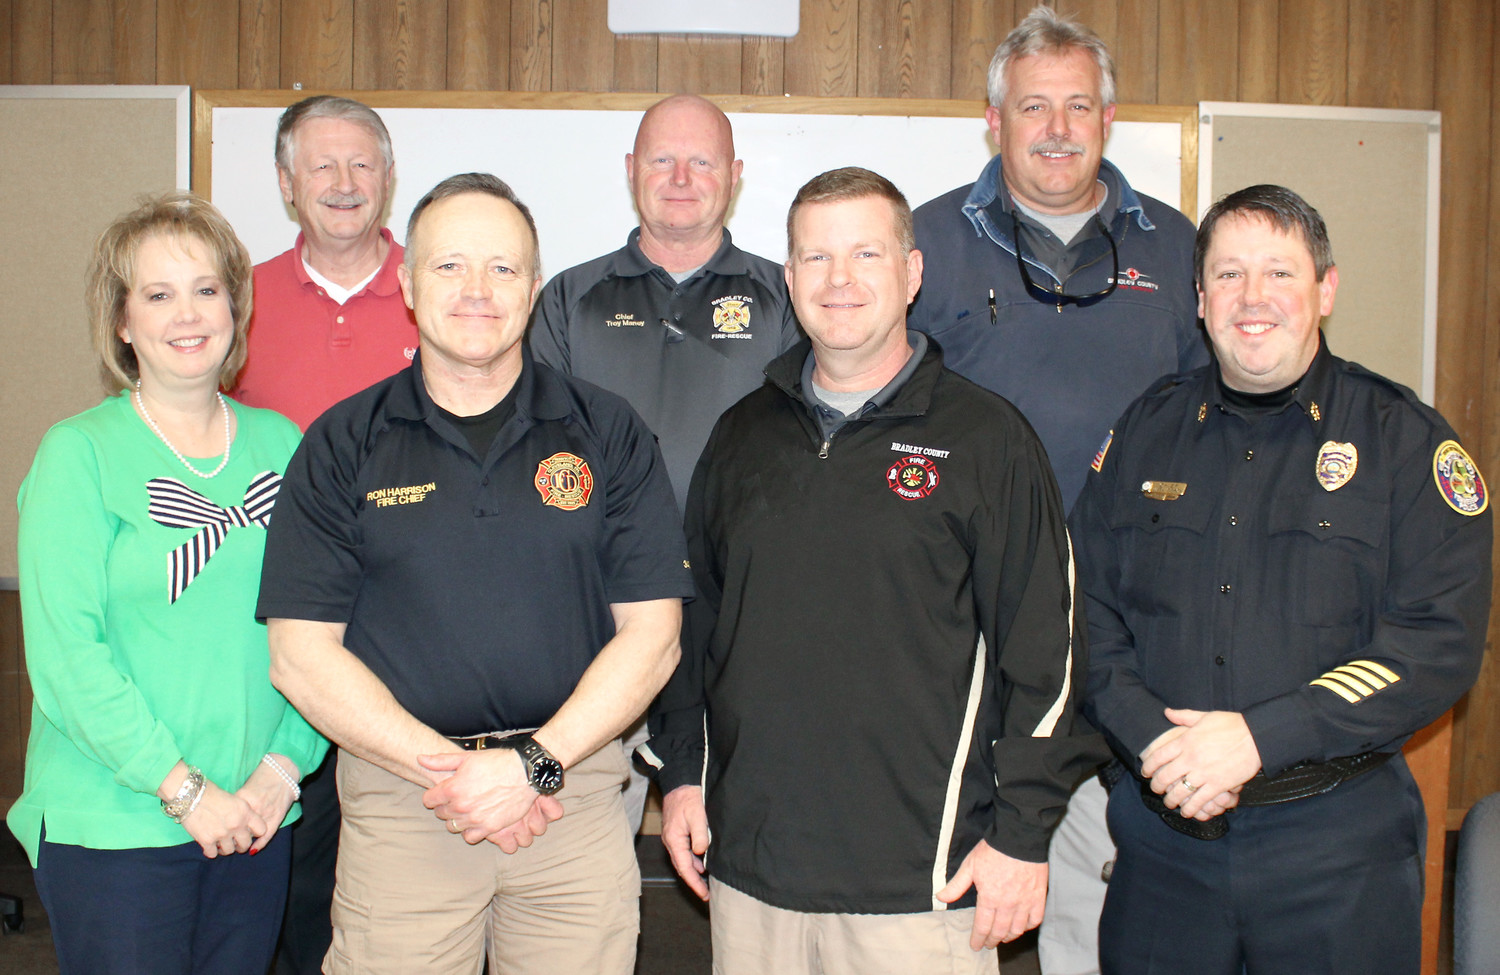 MEMBERS of the 911 Search Committee, front row from left,  are Cleveland Assistant City Manager Melinda Carroll, who is serving as a resource to search committee members; Cleveland Fire Chief Ron Harrison, Bradley County Fire-Rescue Chief Shawn Fairbanks and Cleveland Police Chief Mark Gibson. On the back row, from left, are former 911 director Joe Wilson, who is serving as a resource to search committee members; Bradley County Operations Fire Chief Troy Maney and Charleston Police Department Chief Johnny Stokes.